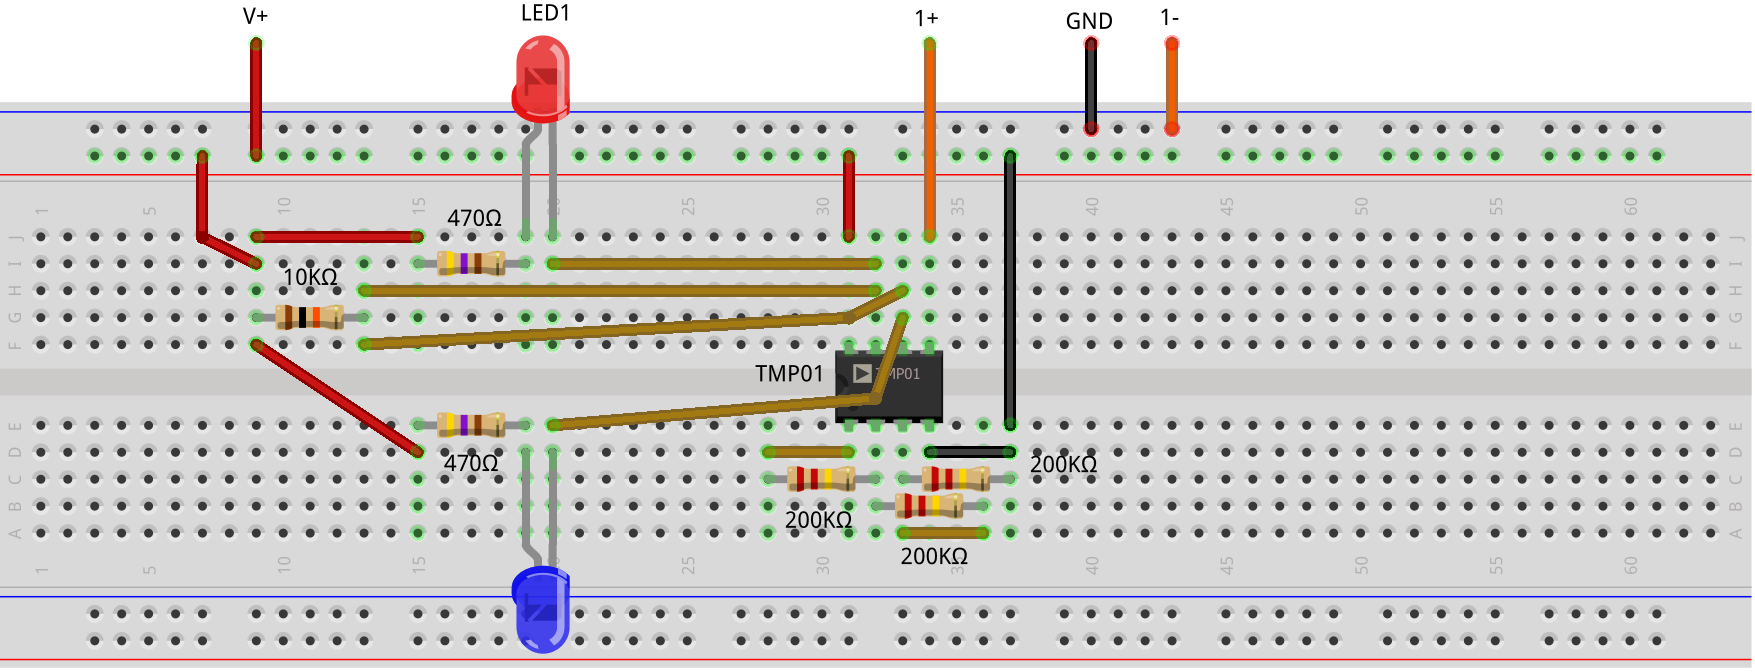 Activity Temperature Control Using Window Comparator Analog Alarm With Op Amp Figure 6